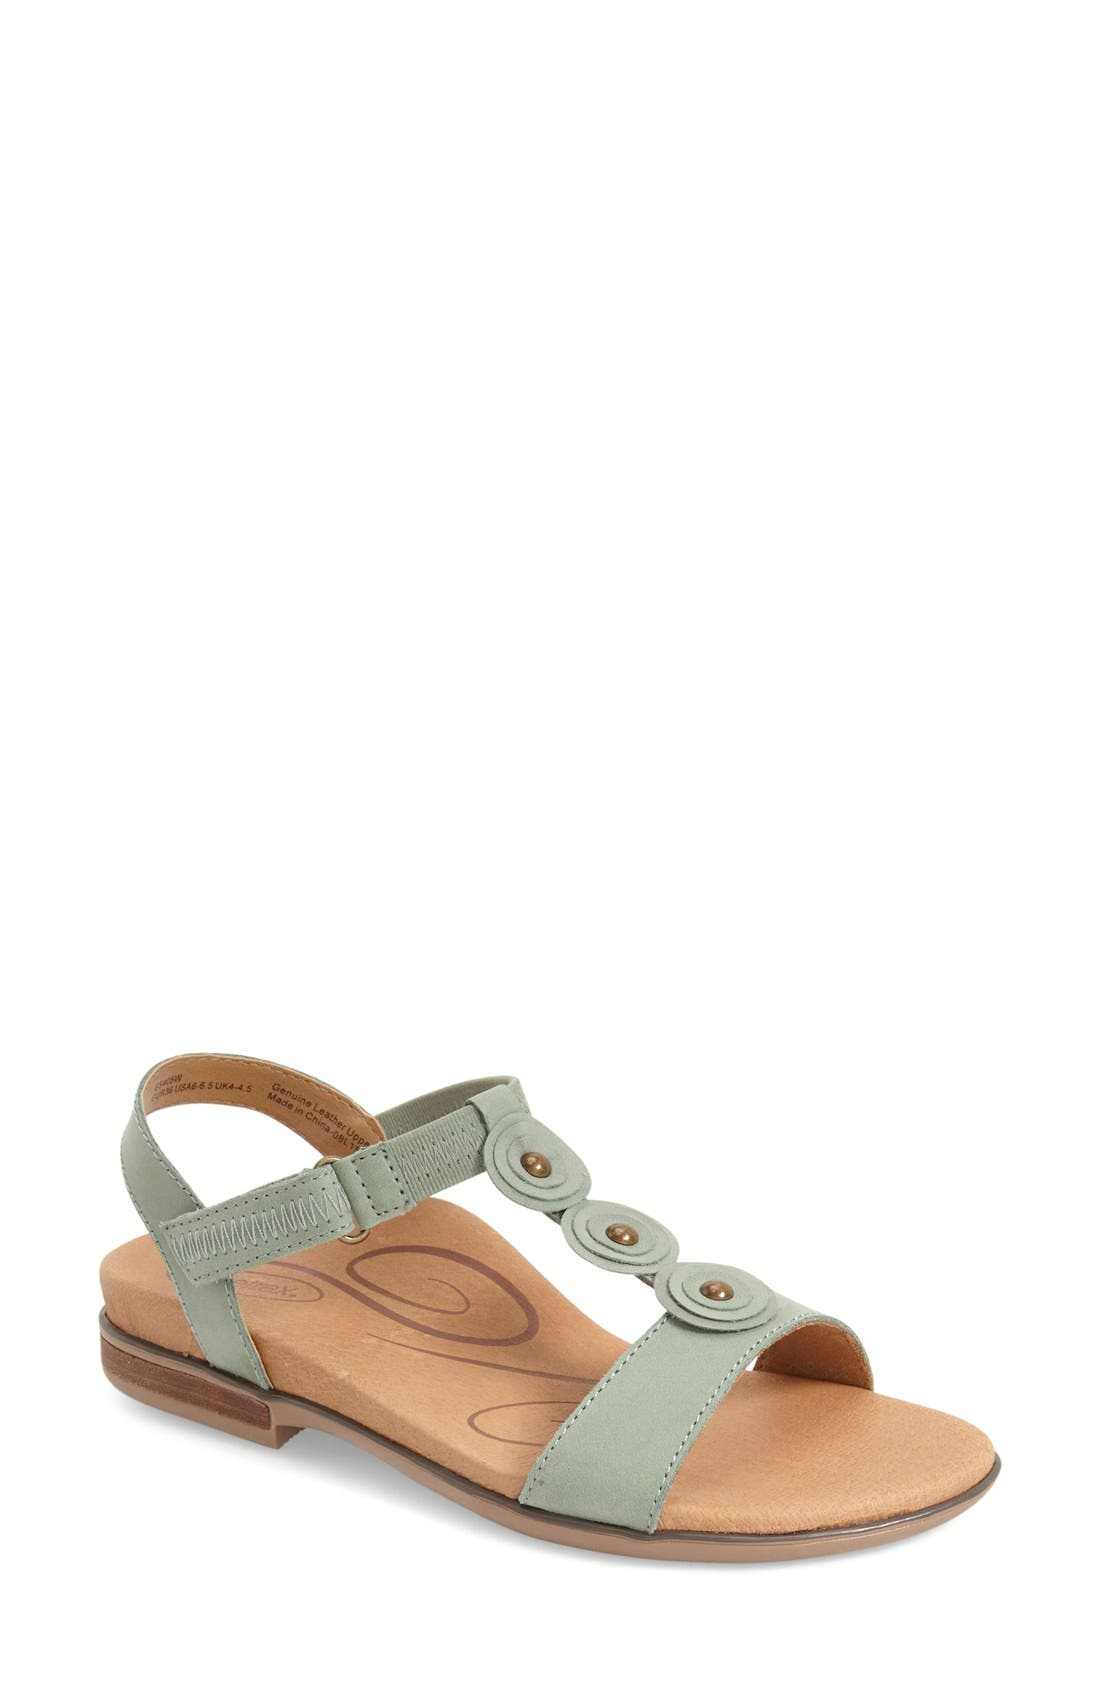 Alternate Image 1 Selected - Aetrex 'Sharon' T-Strap Sandal (Women)